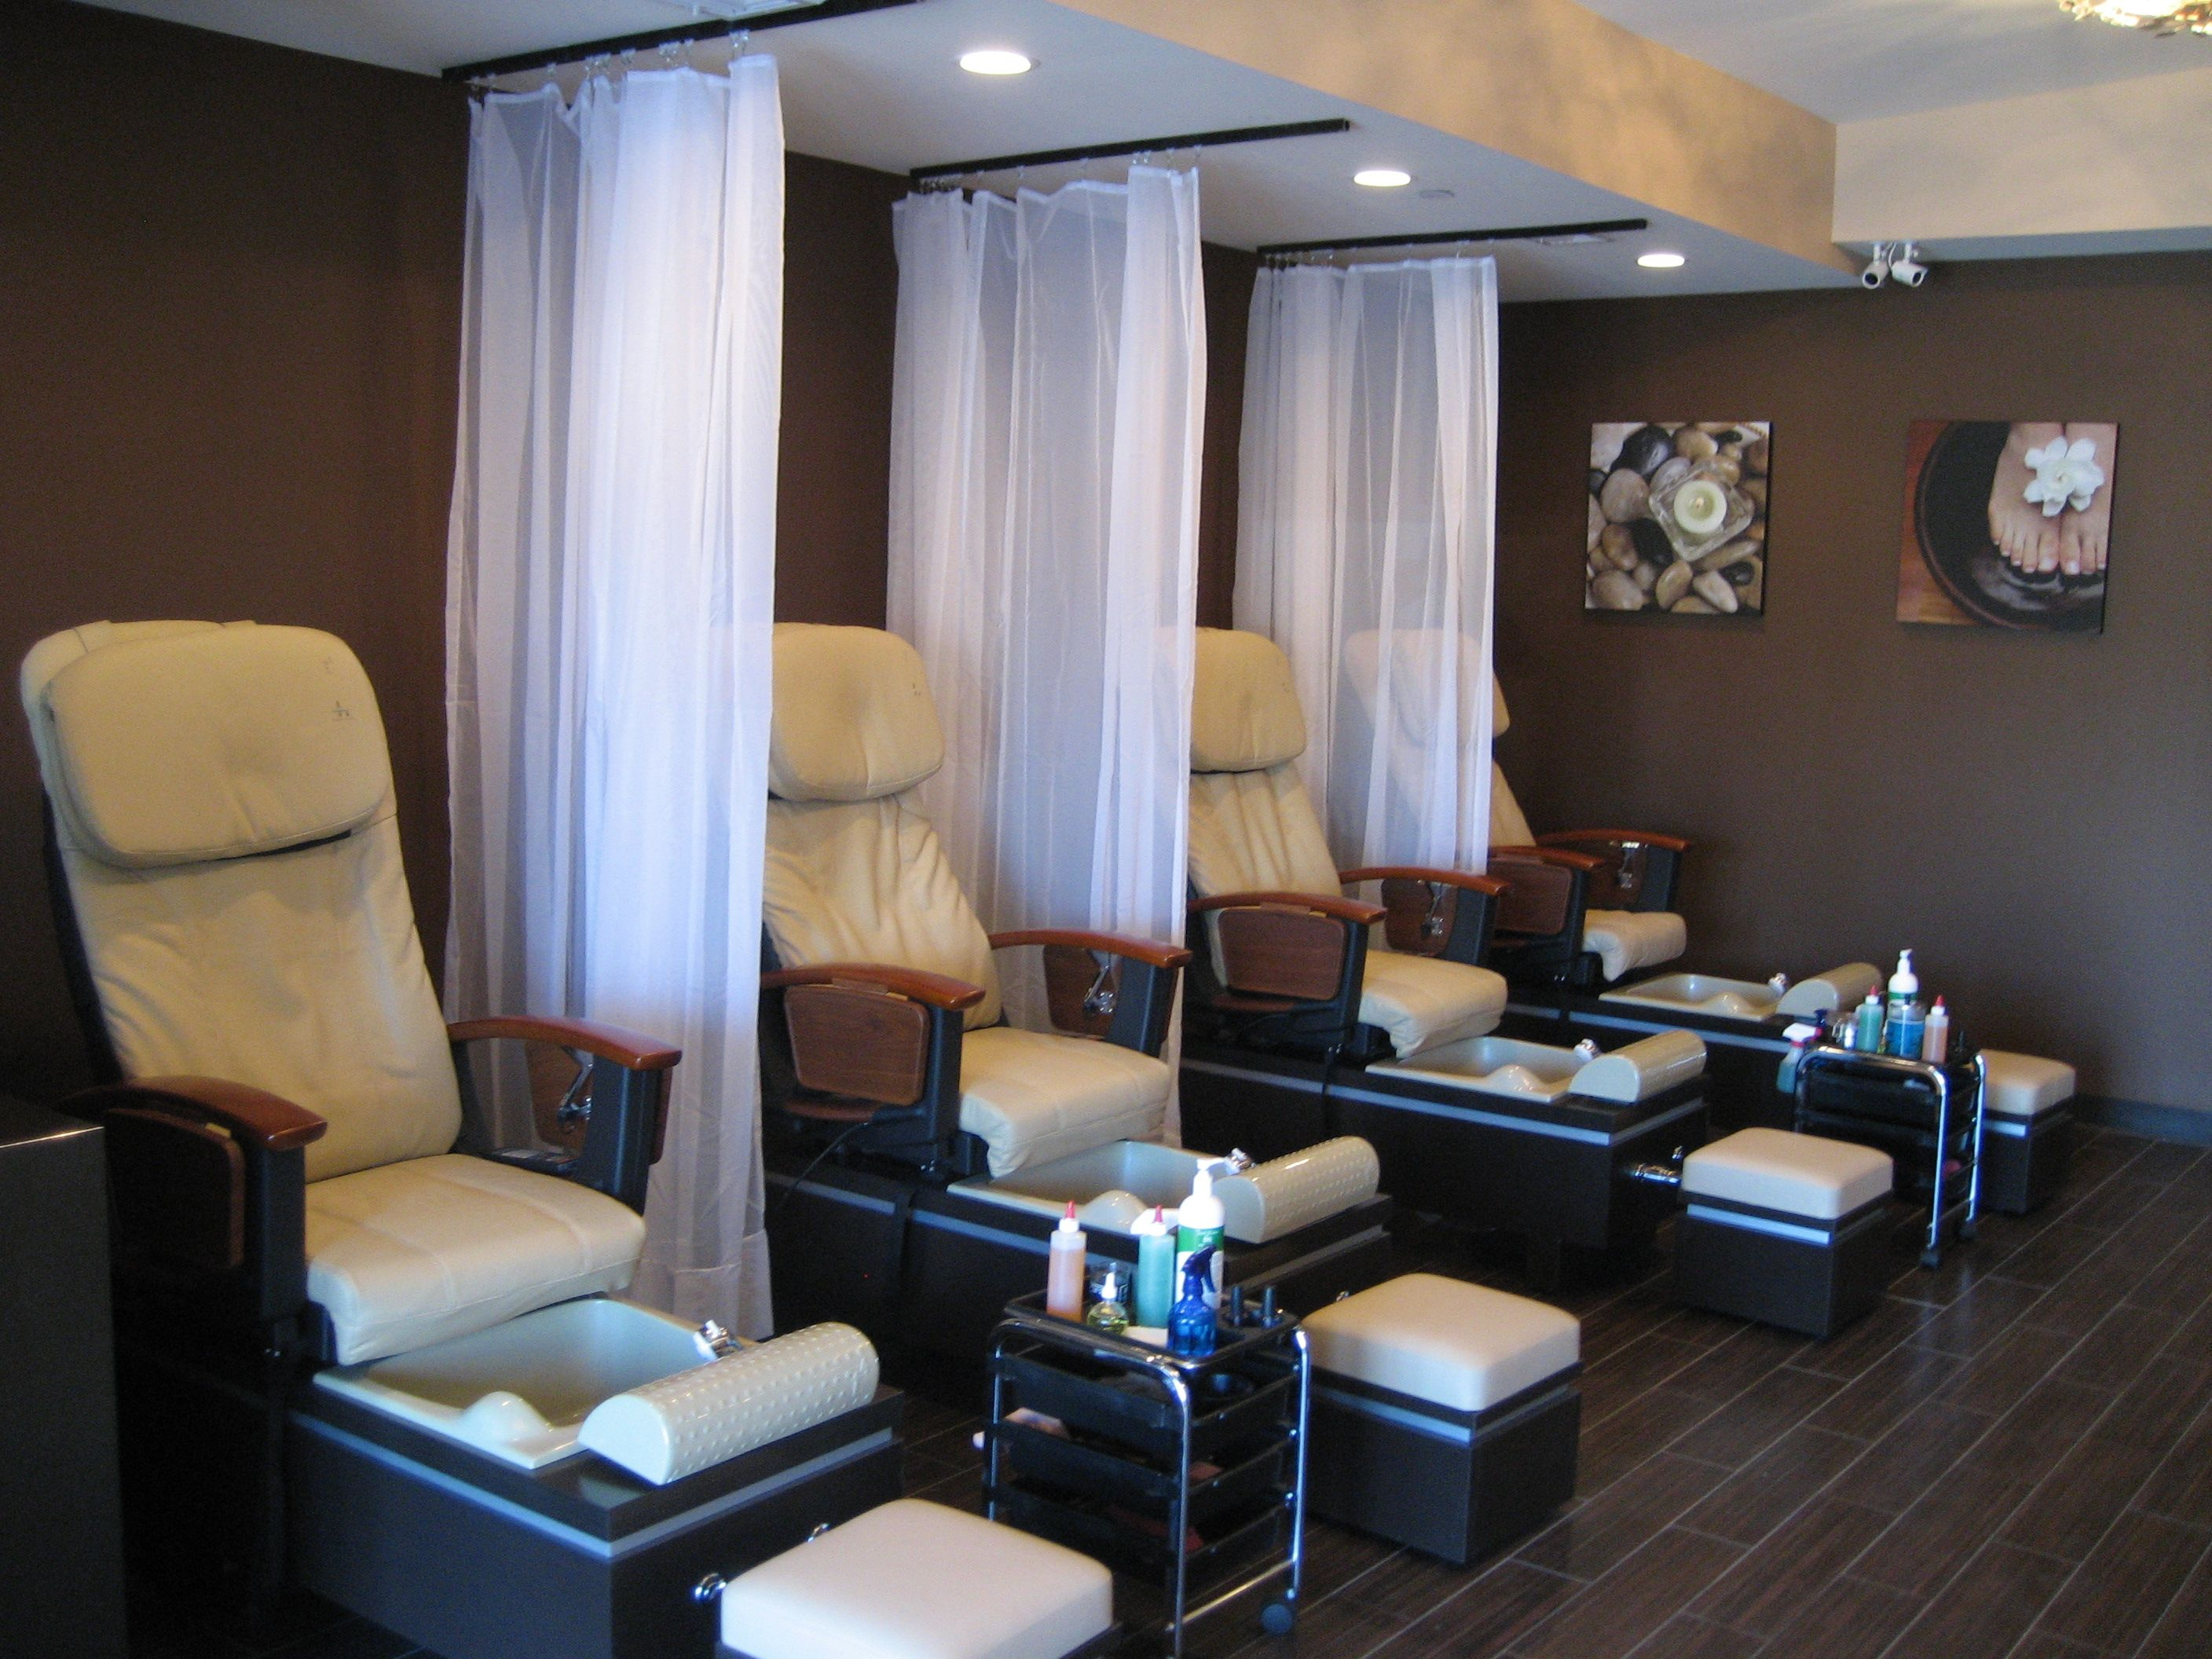 Salon Decor2 Nails Salon Salon Interior Design Interior Designing Nail